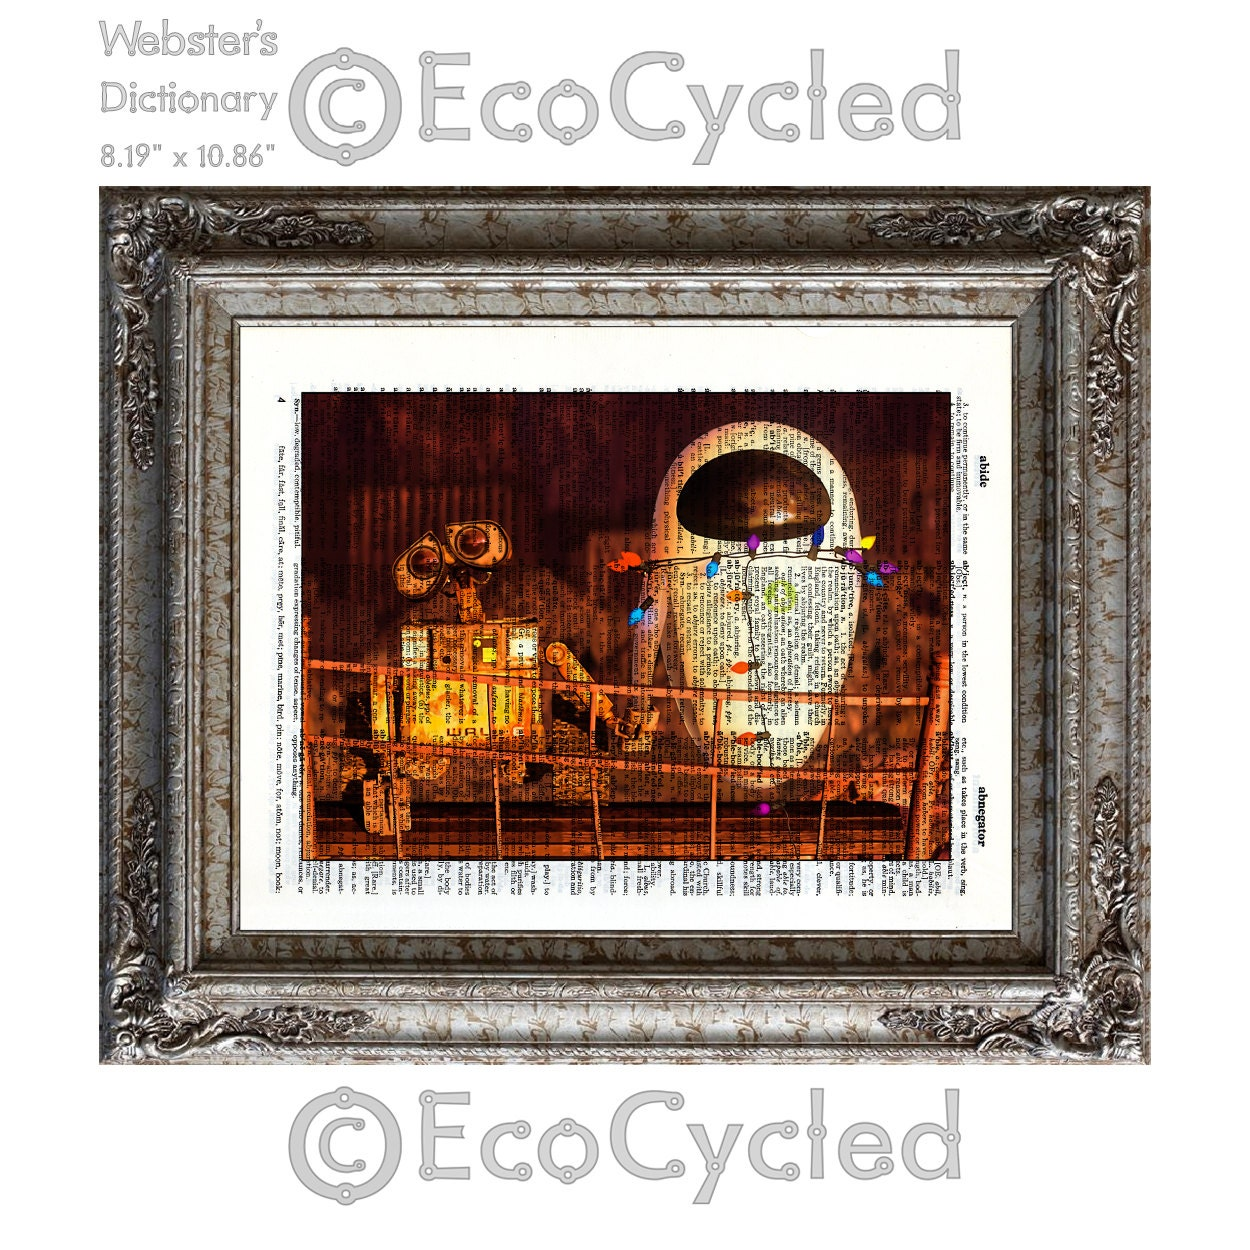 Wall-E & Eve 5 with Christmas Lights on Vintage Upcycled